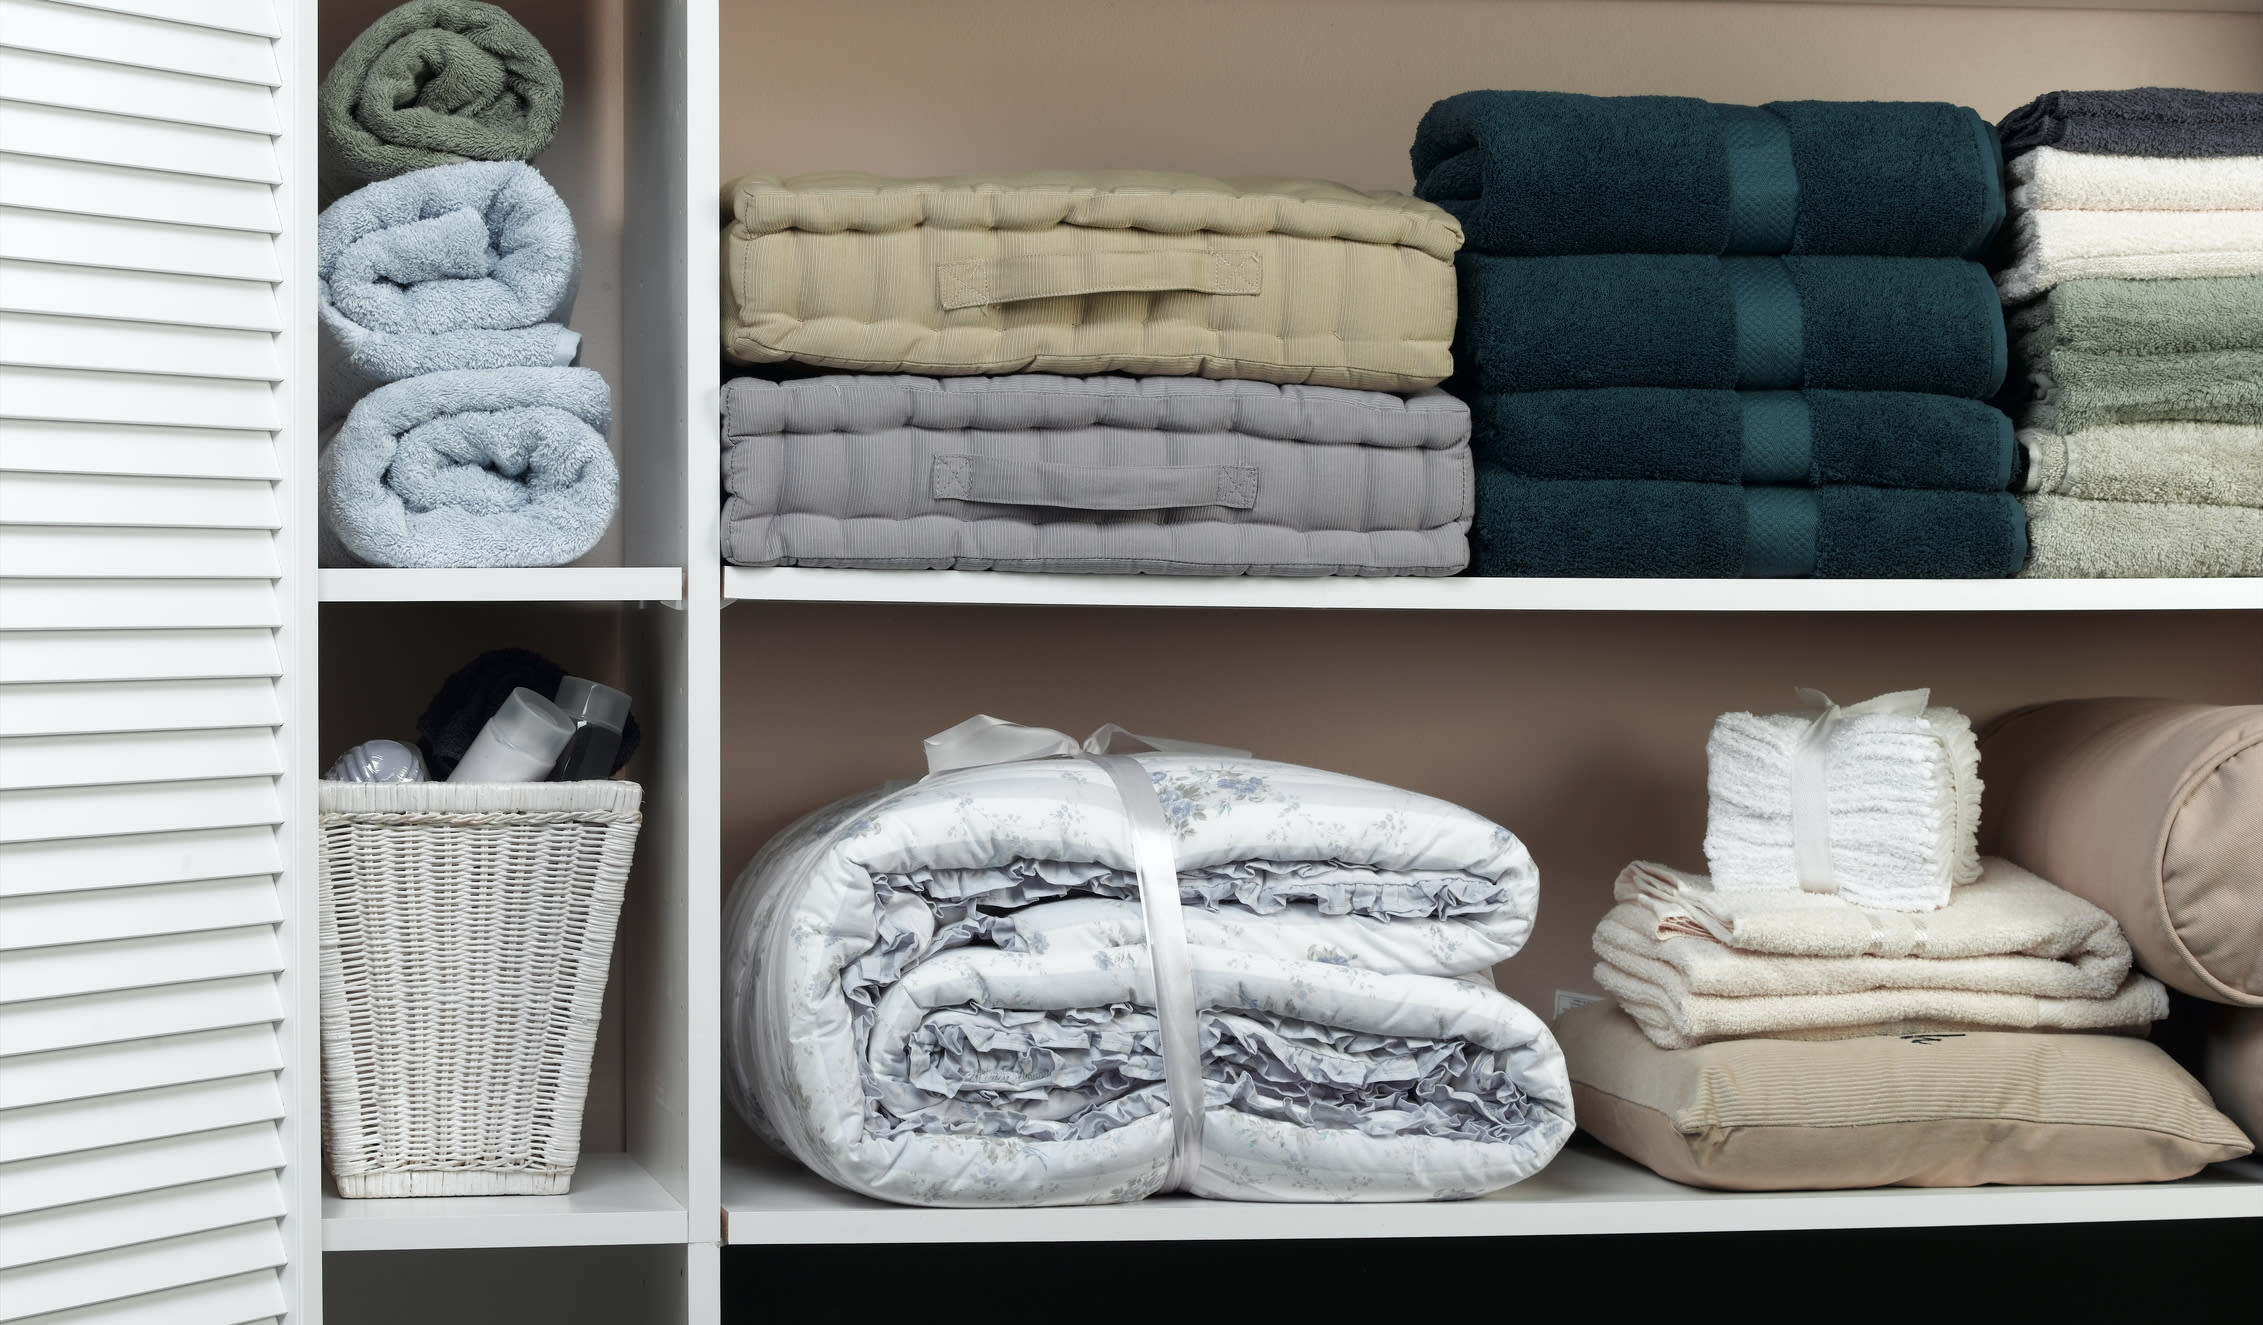 bedding and towels